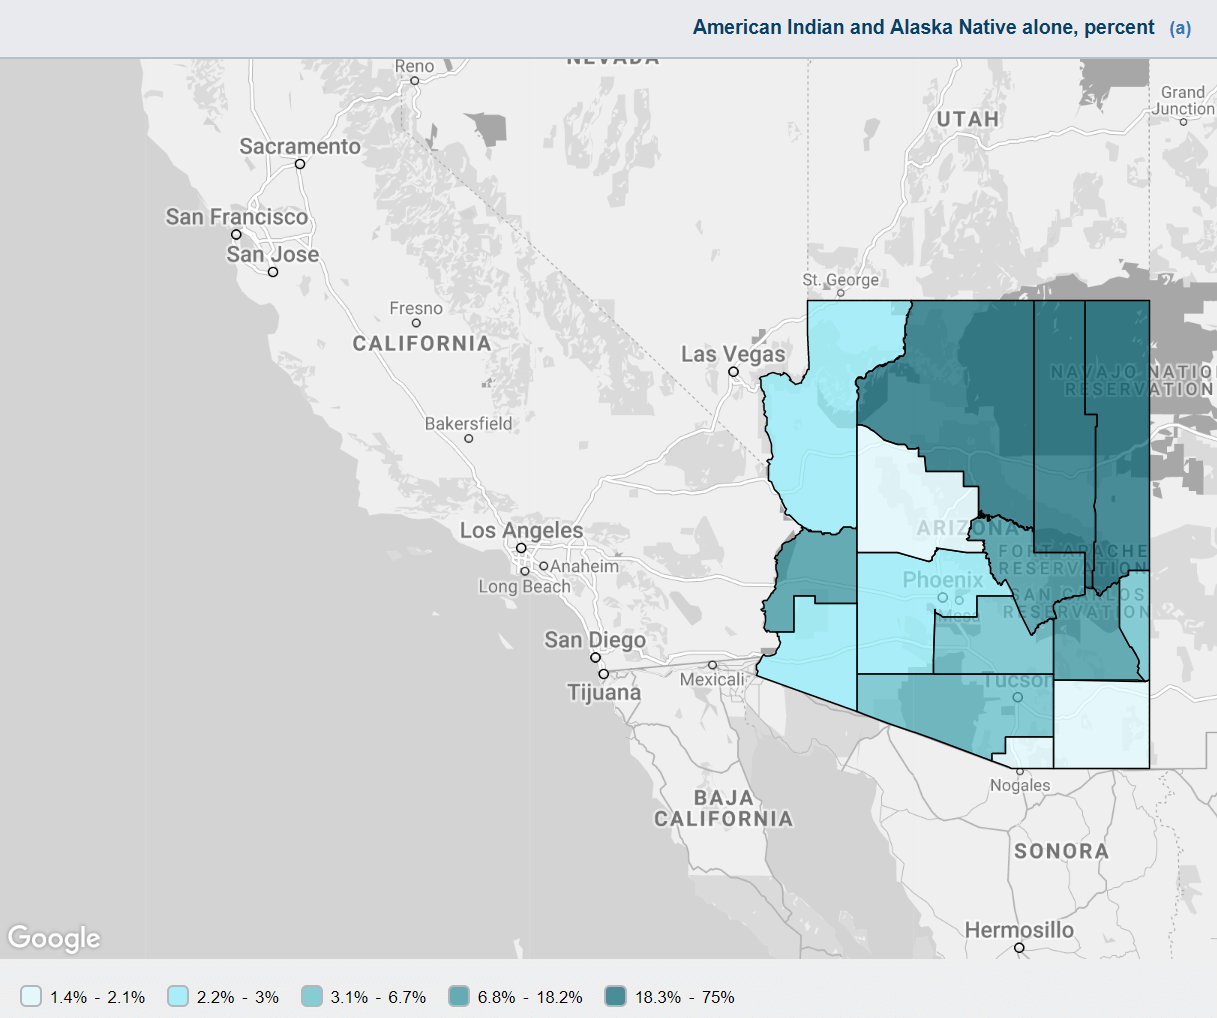 AZ_US census bureau demographics - State of Reform | State ... on cities of metro phoenix, thematic map of phoenix, political map of phoenix, demographic map california, demographic map texas, aerial of phoenix, racial map of phoenix, demographic map arizona, general map of phoenix, crime map of phoenix,